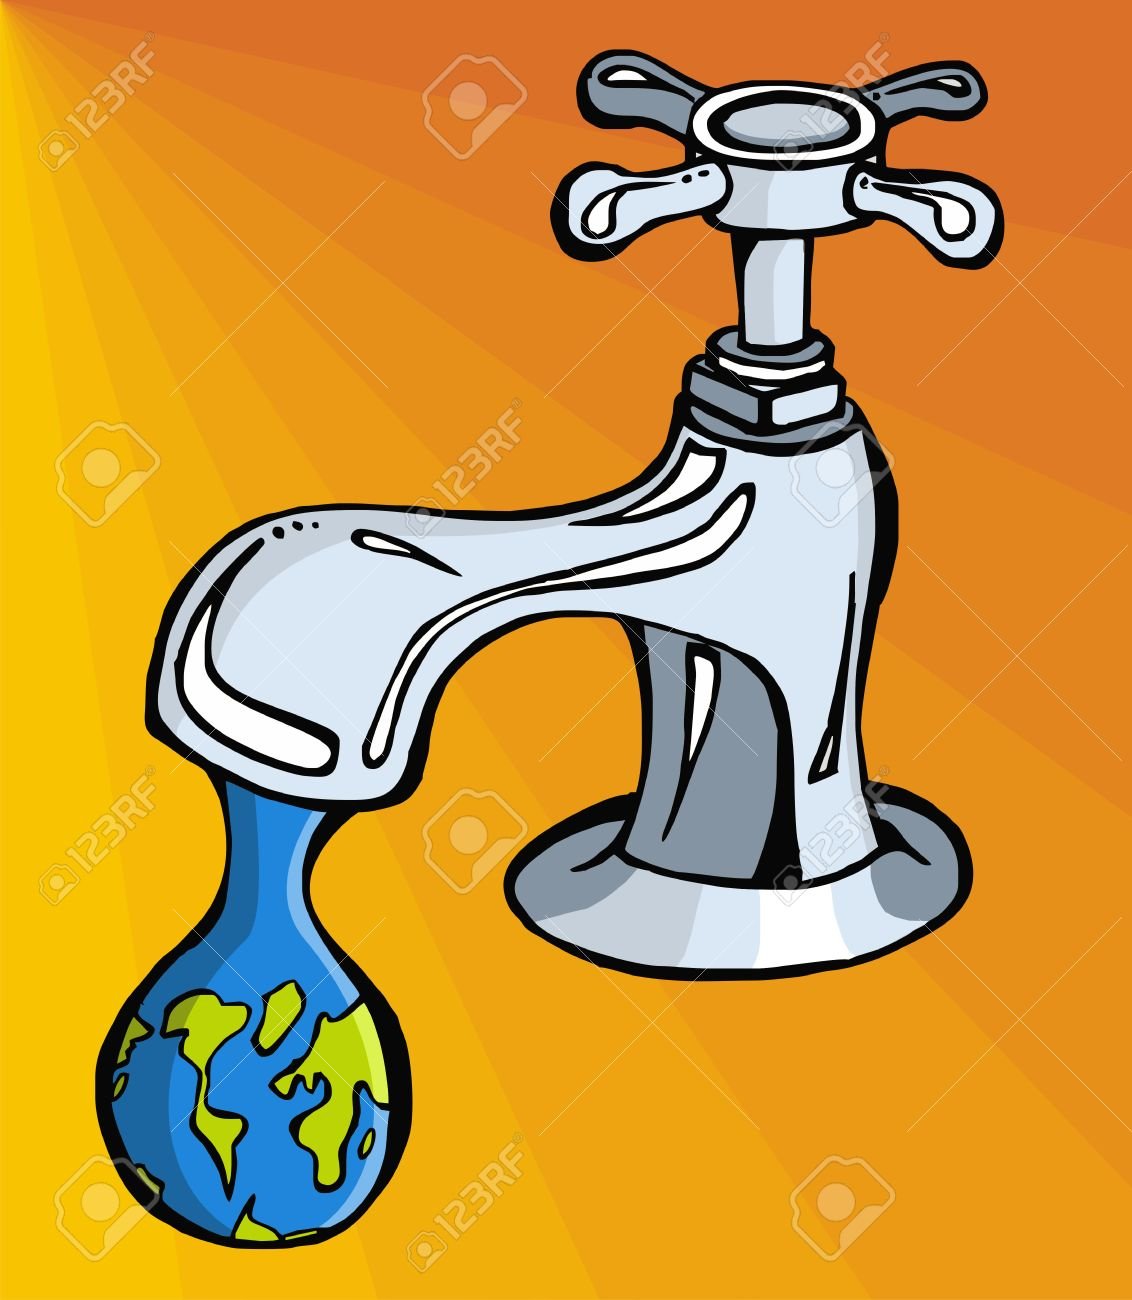 leaking faucet the earth planet shaped drop stock vector - Leaking Faucet